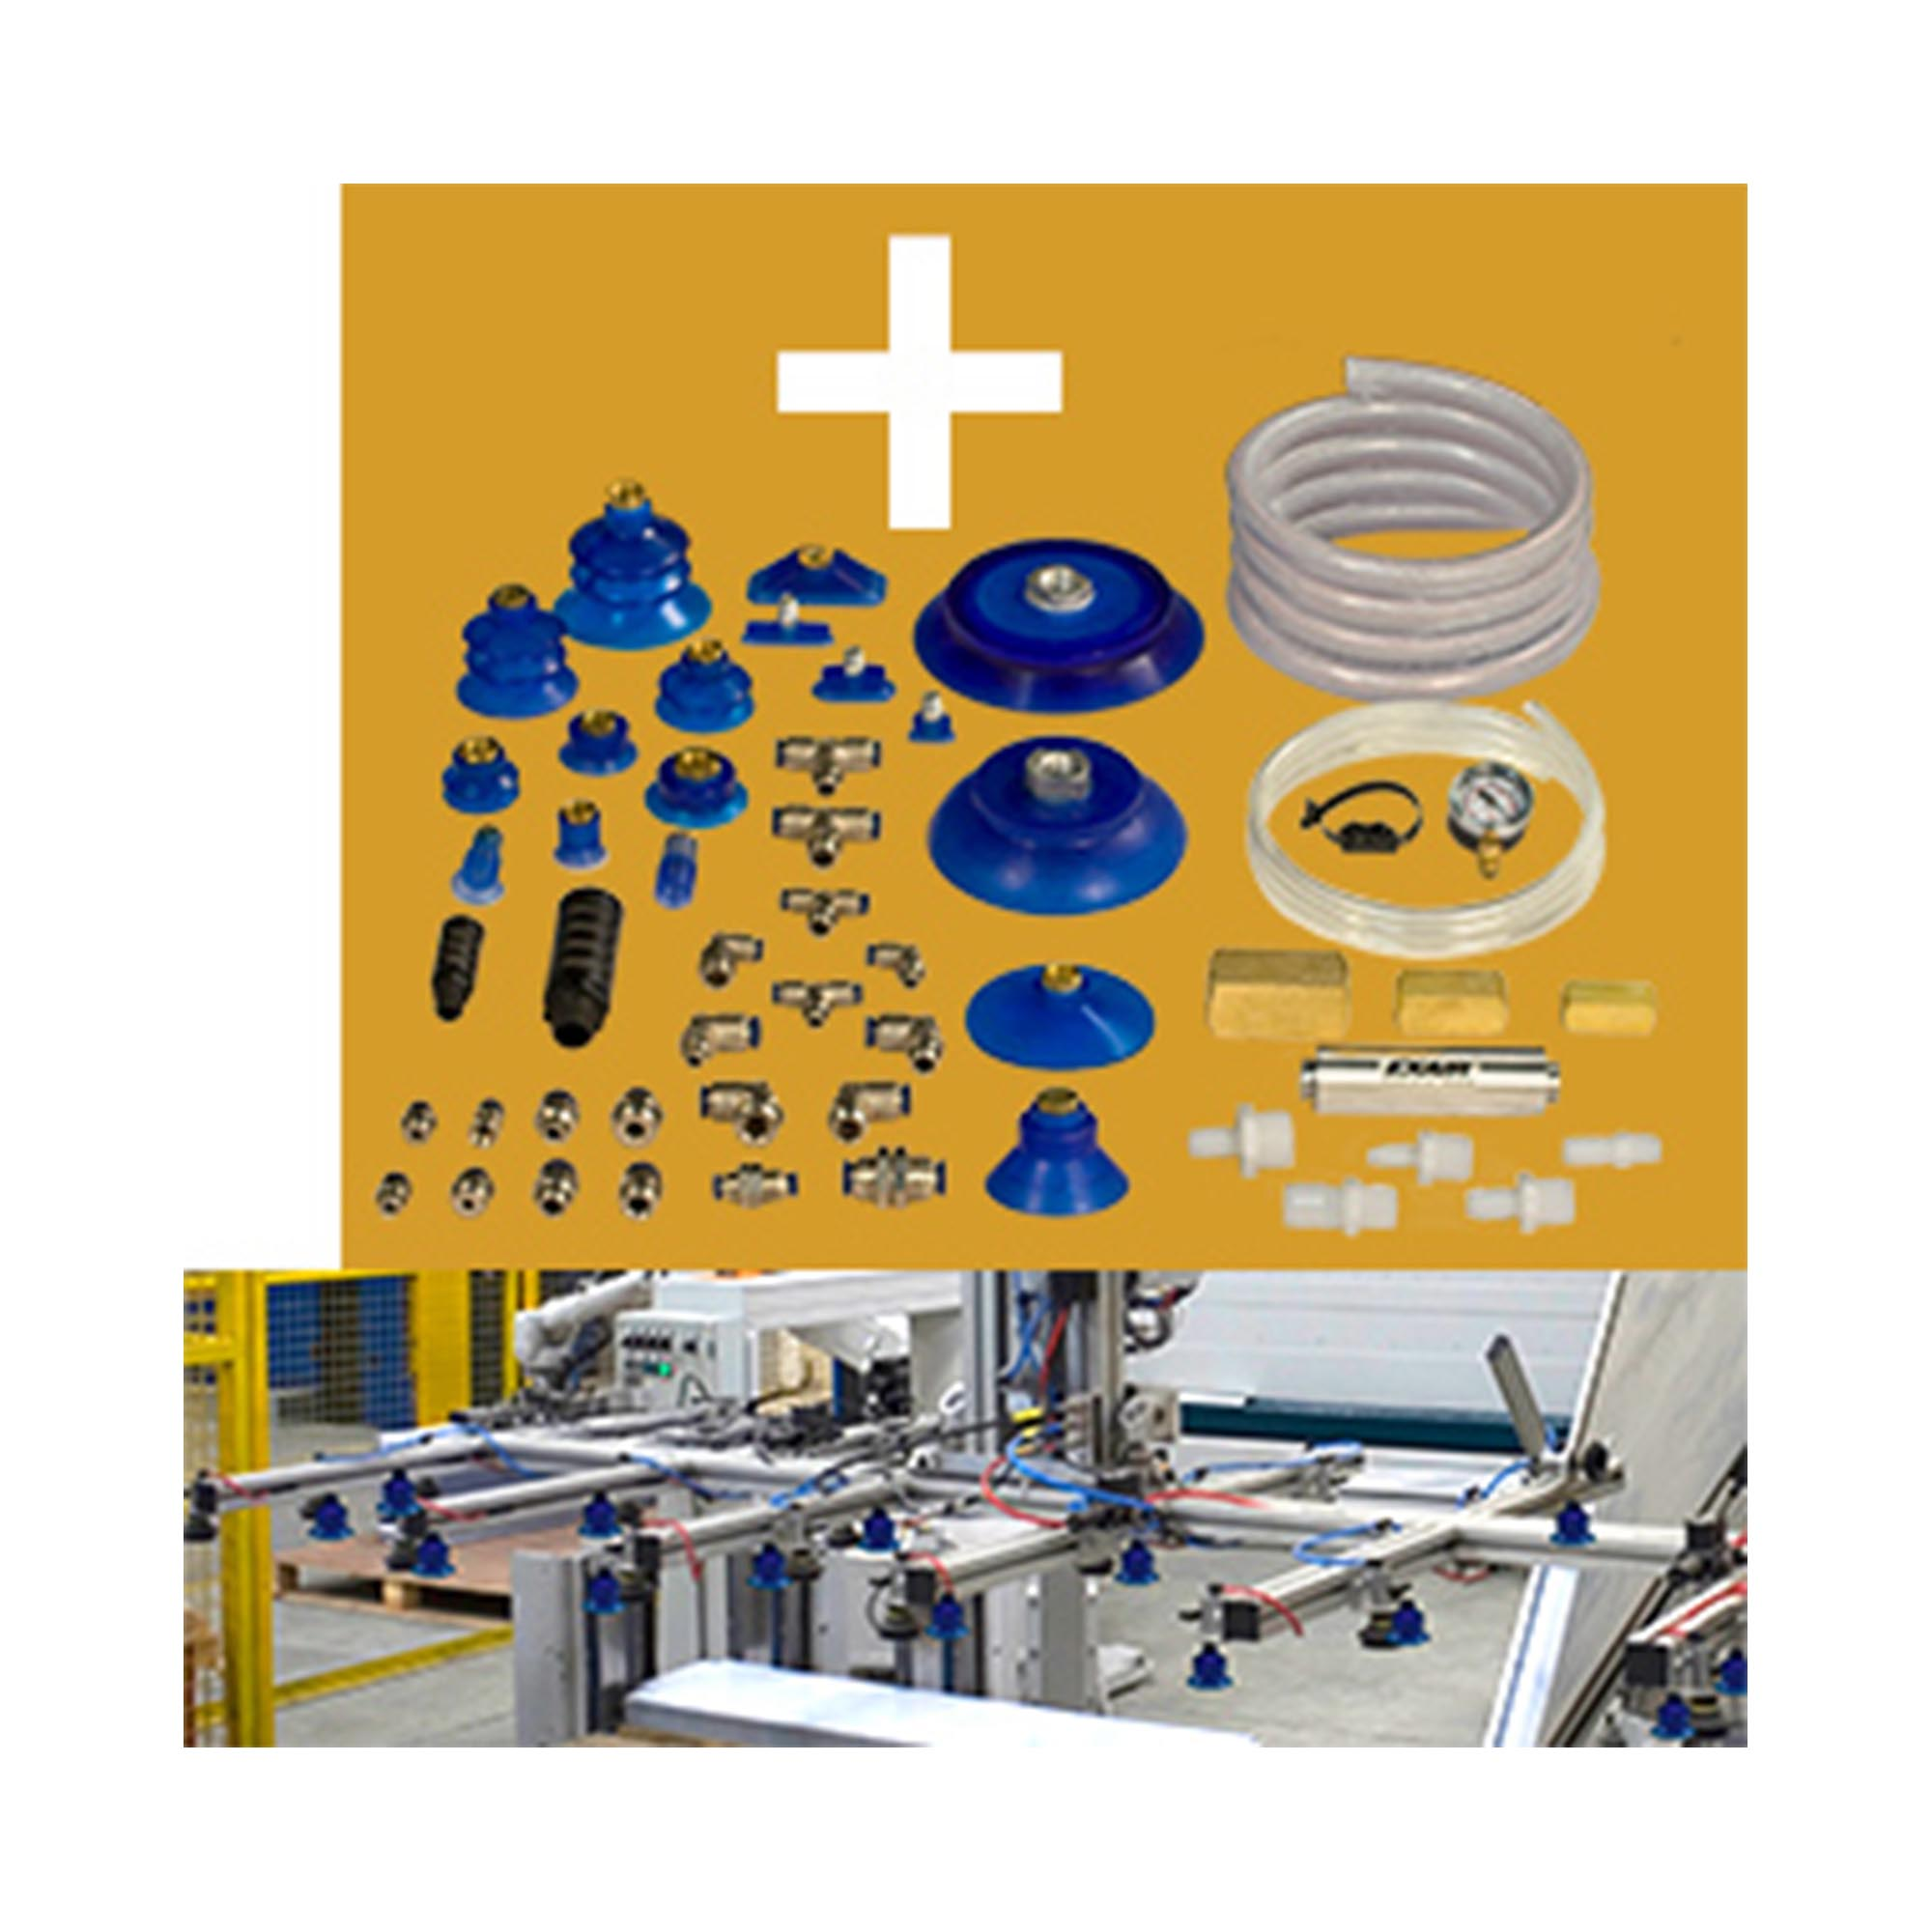 Many accessories are available for E-Vacs including suction cups, fittings and vacuum tubing